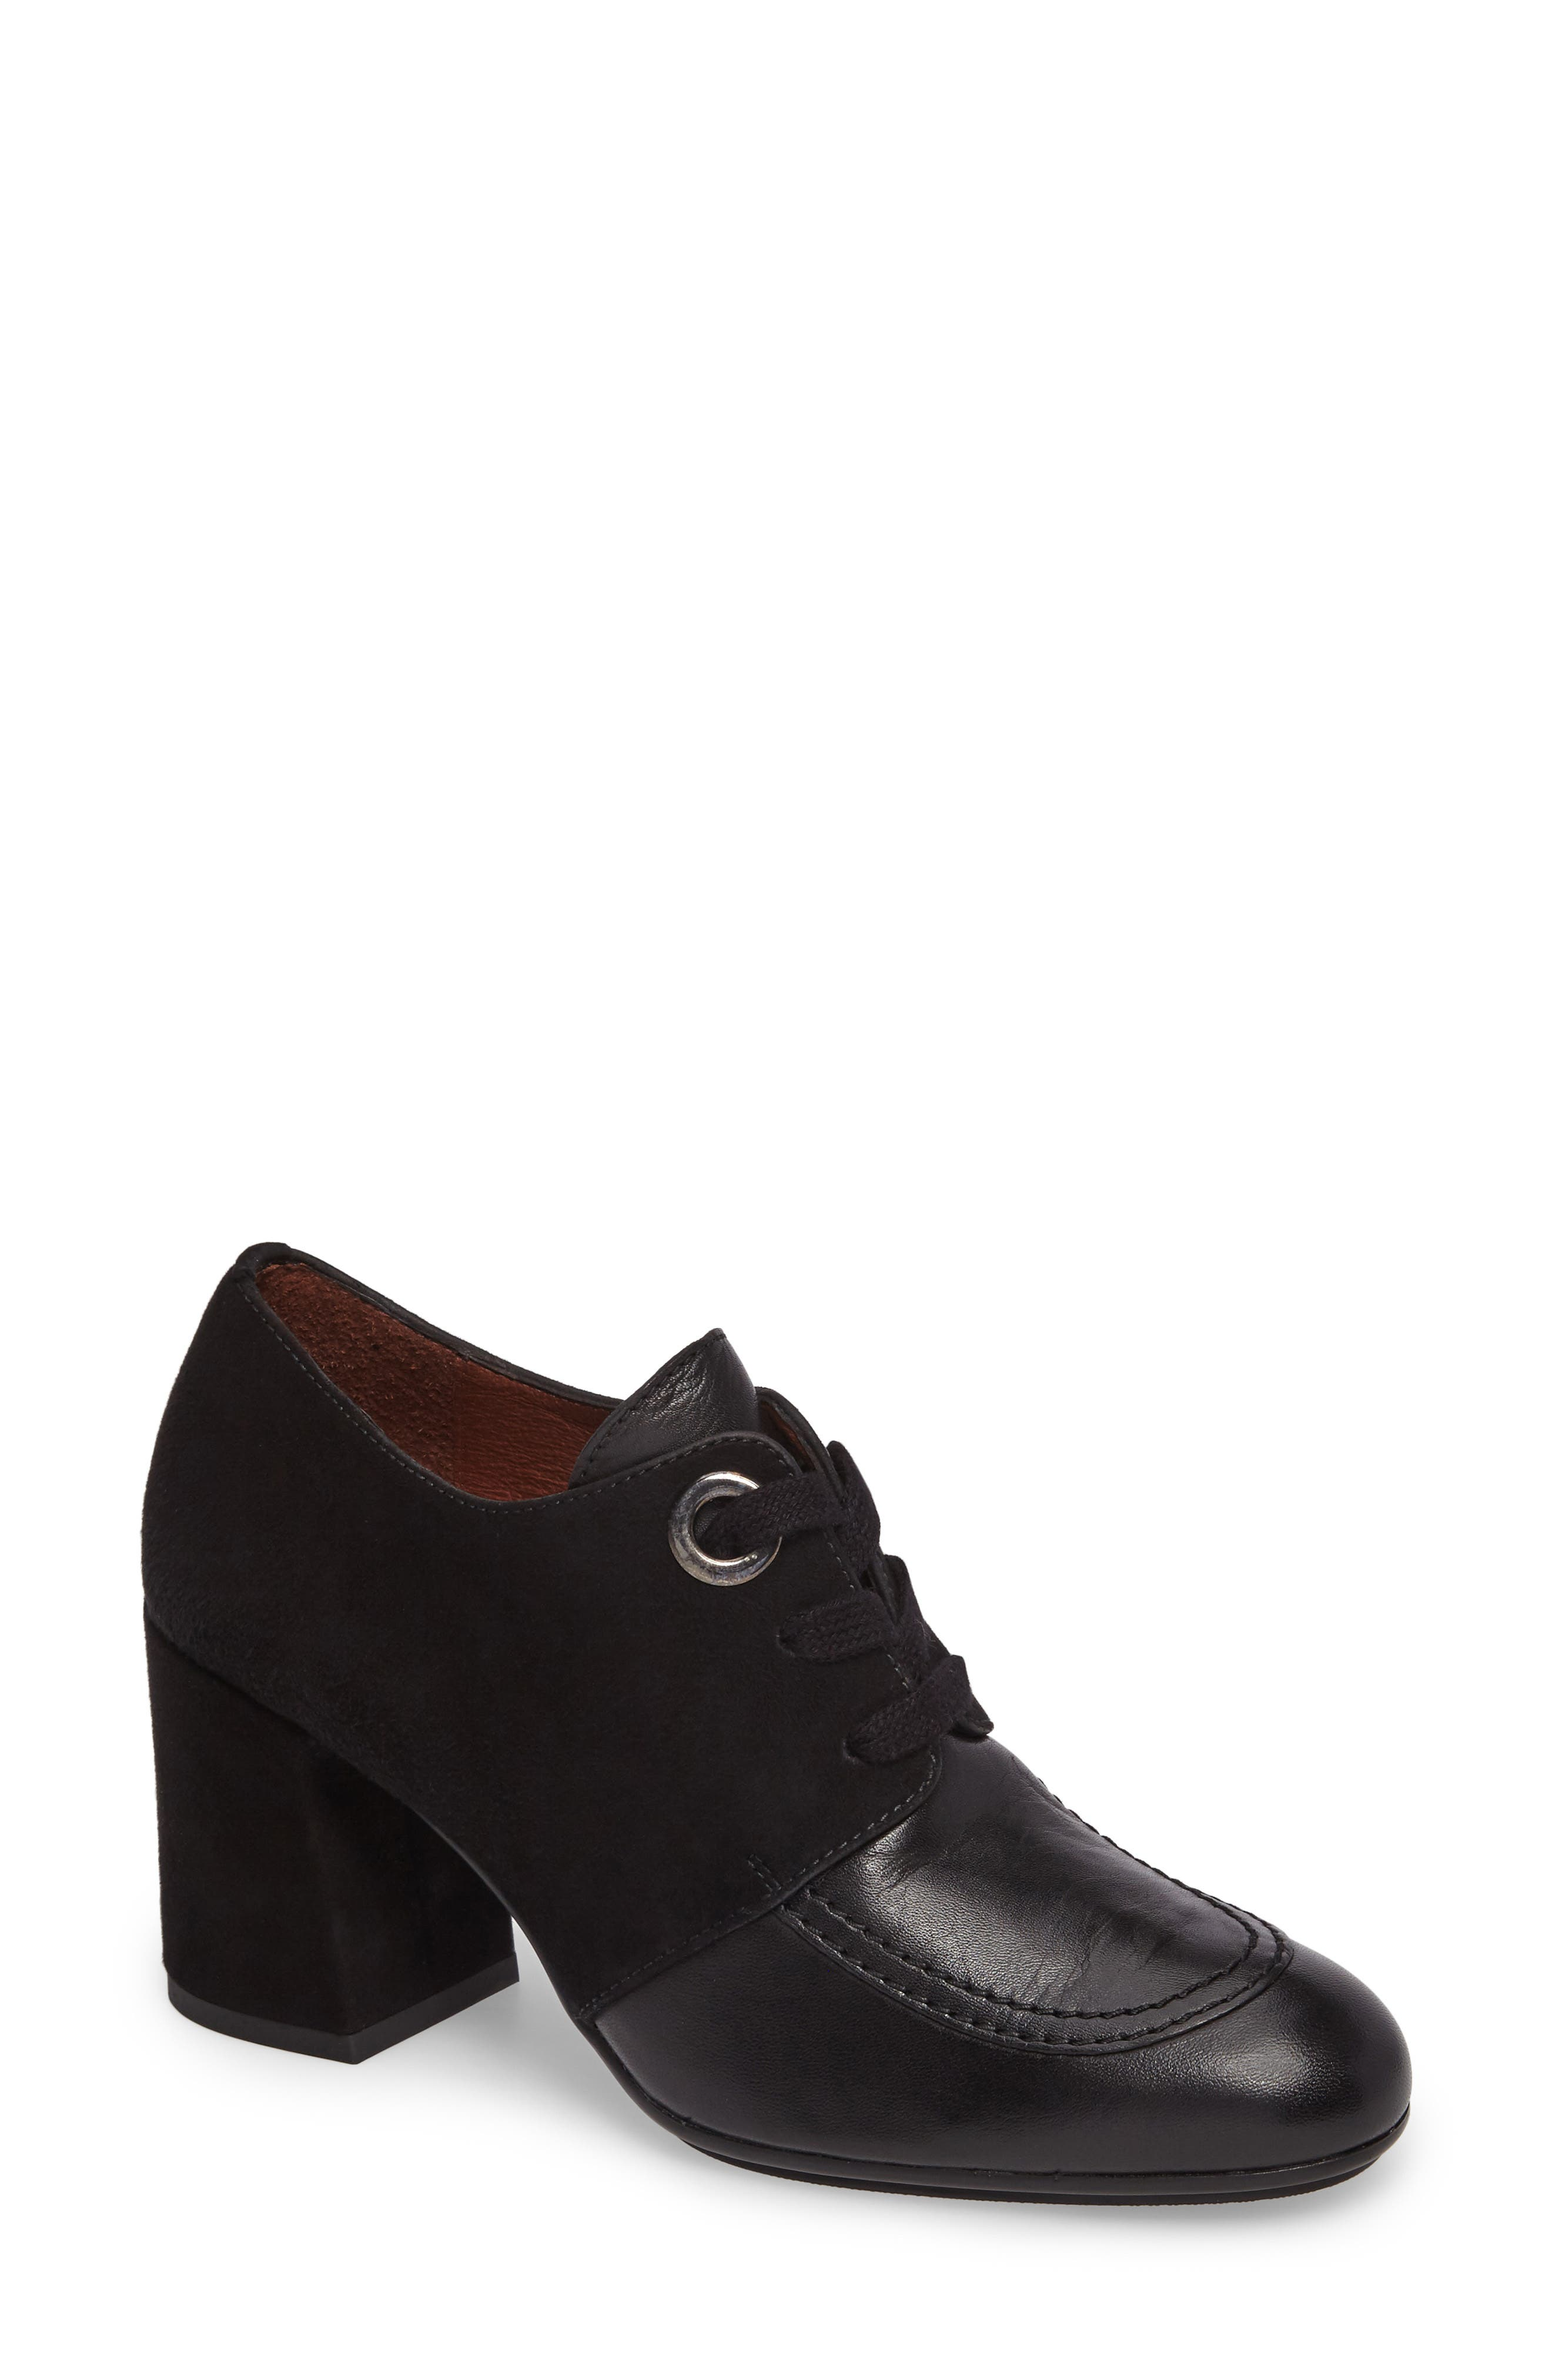 Hispanitas Glenna Oxford Pump (Women)